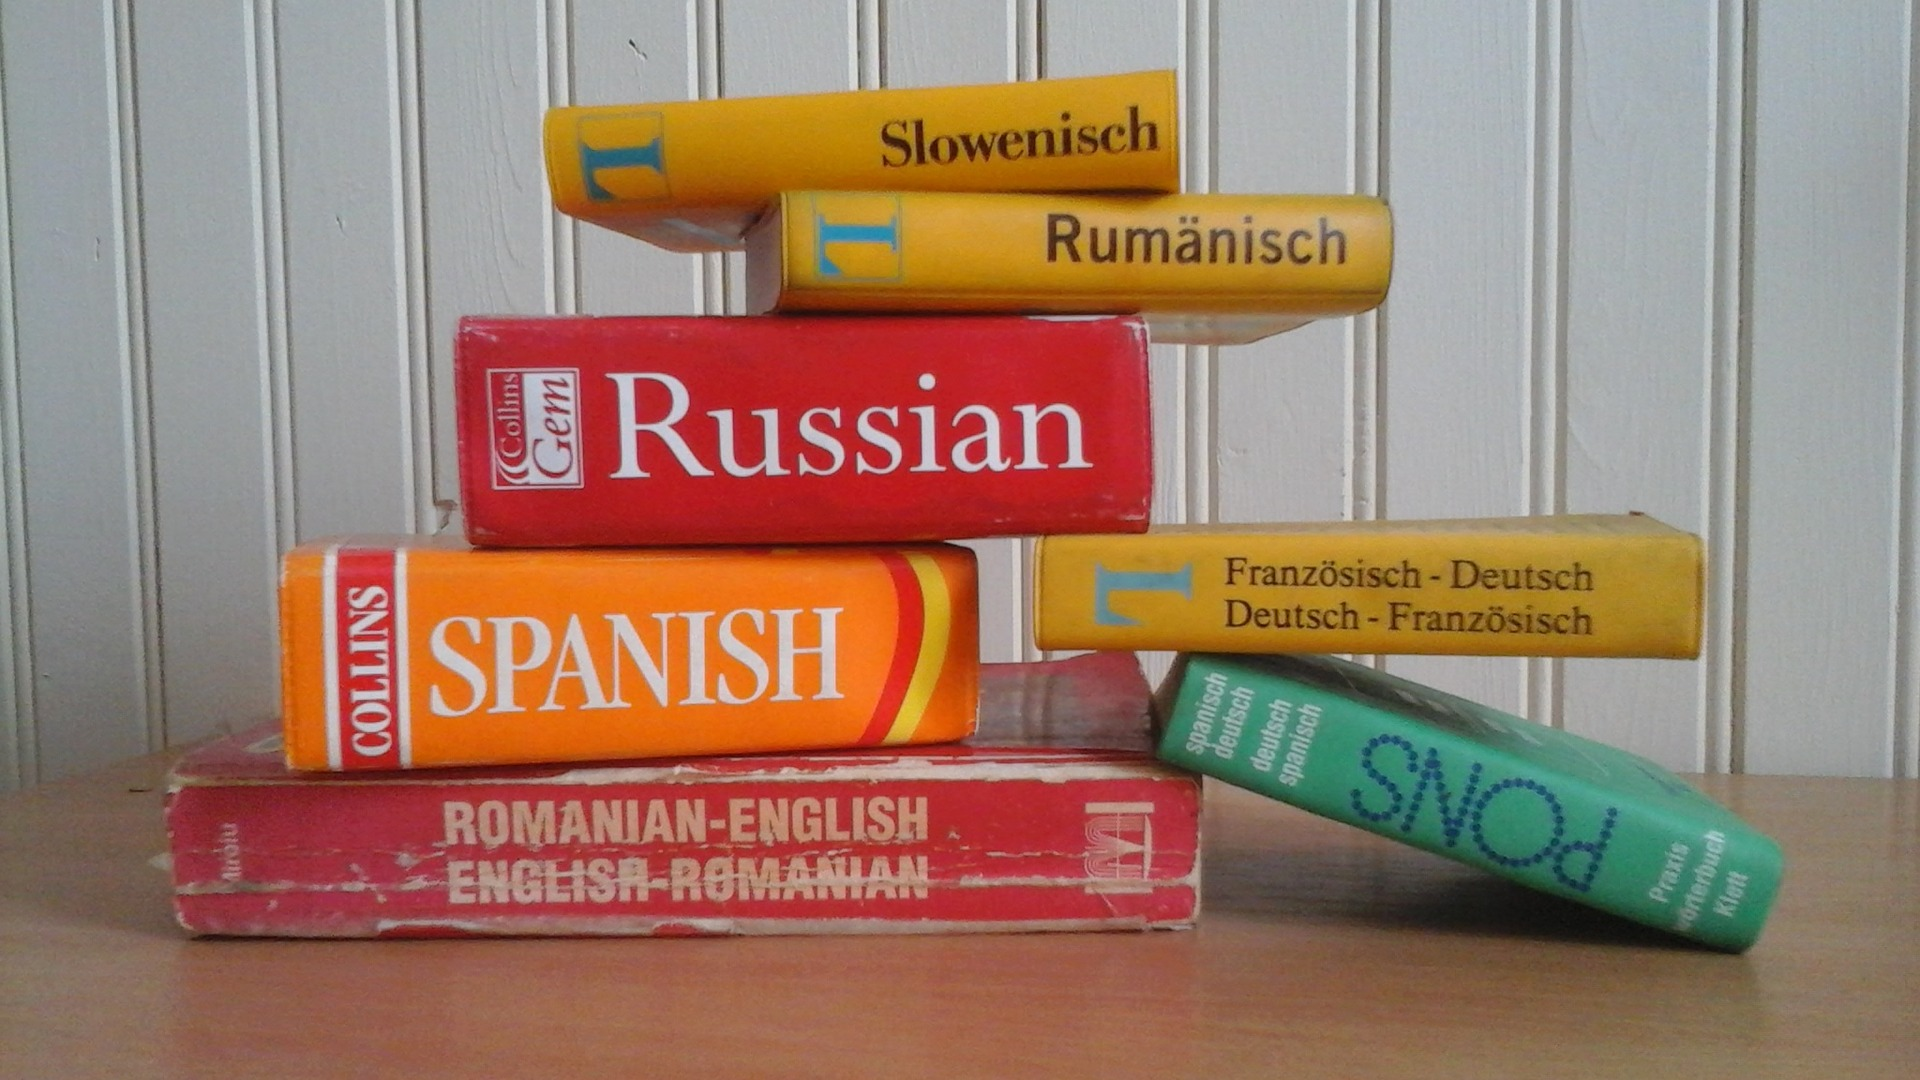 Dictionaries in several languages are piled up on top of each other